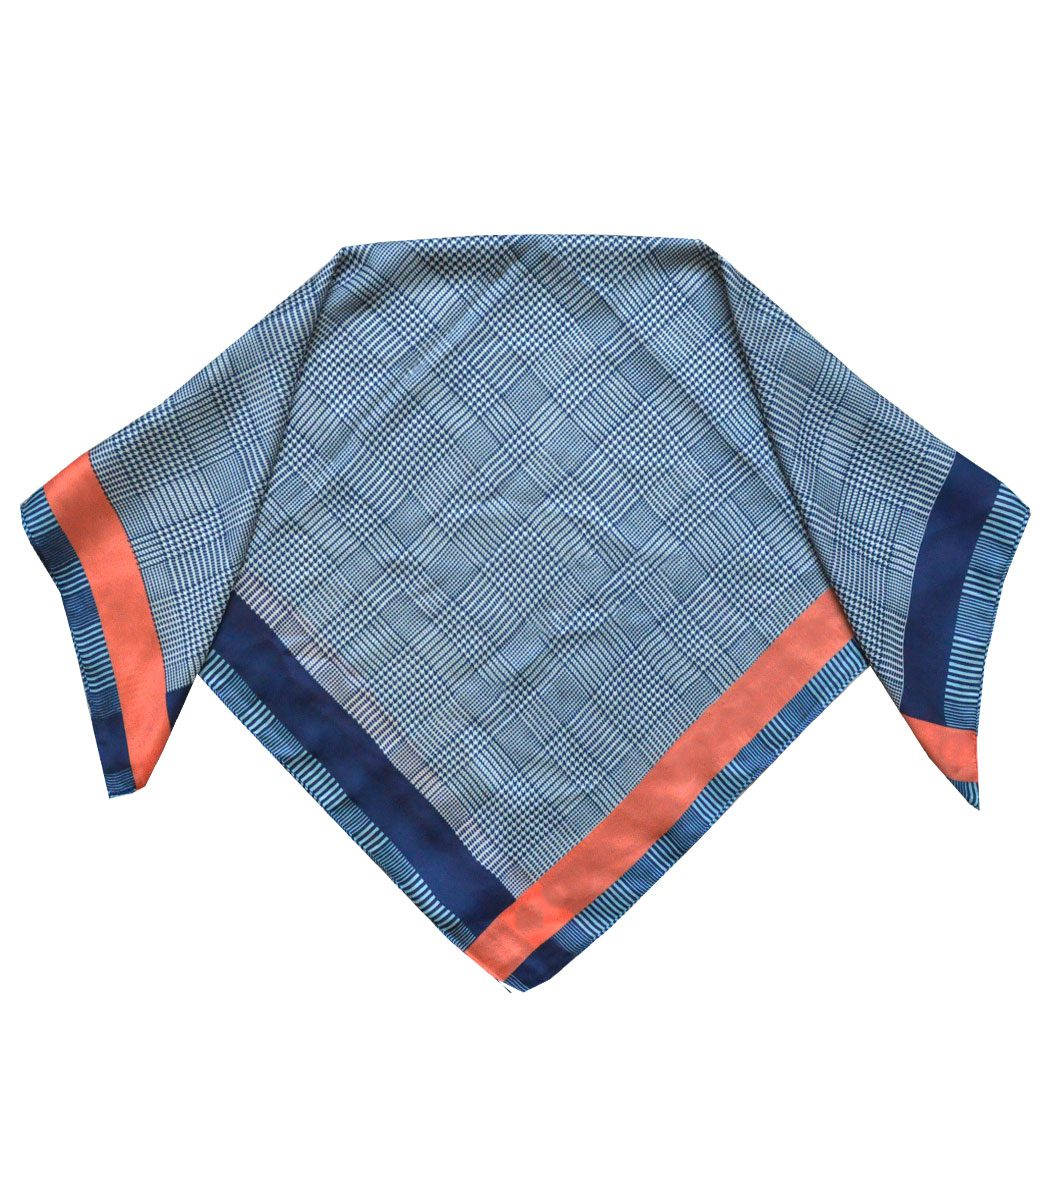 Prince of wales scarf